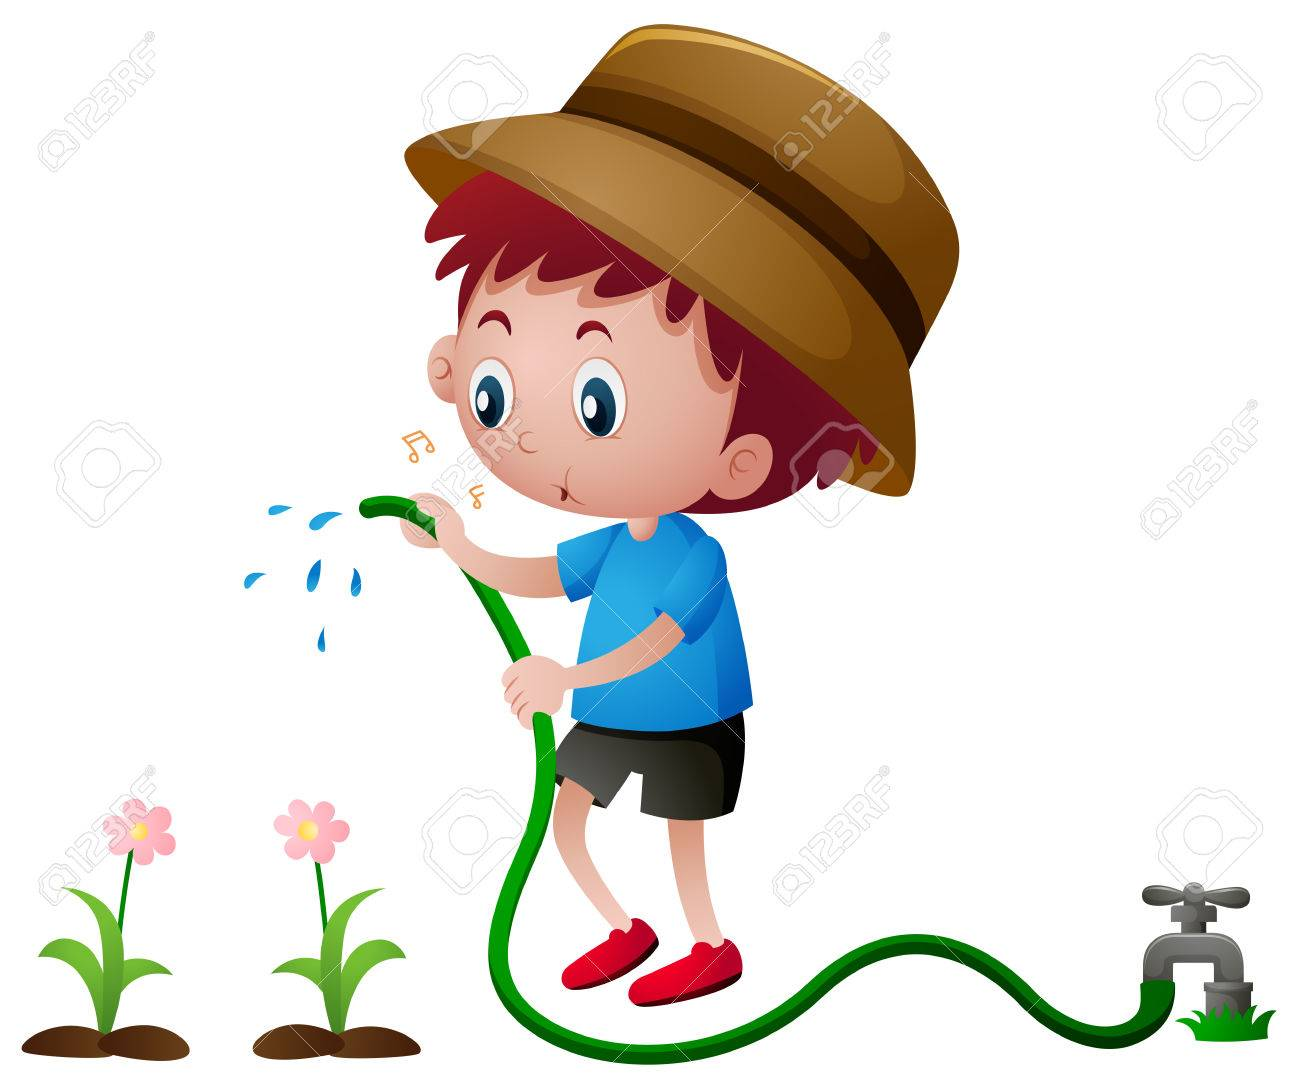 Boy watering plants with hose illustration.